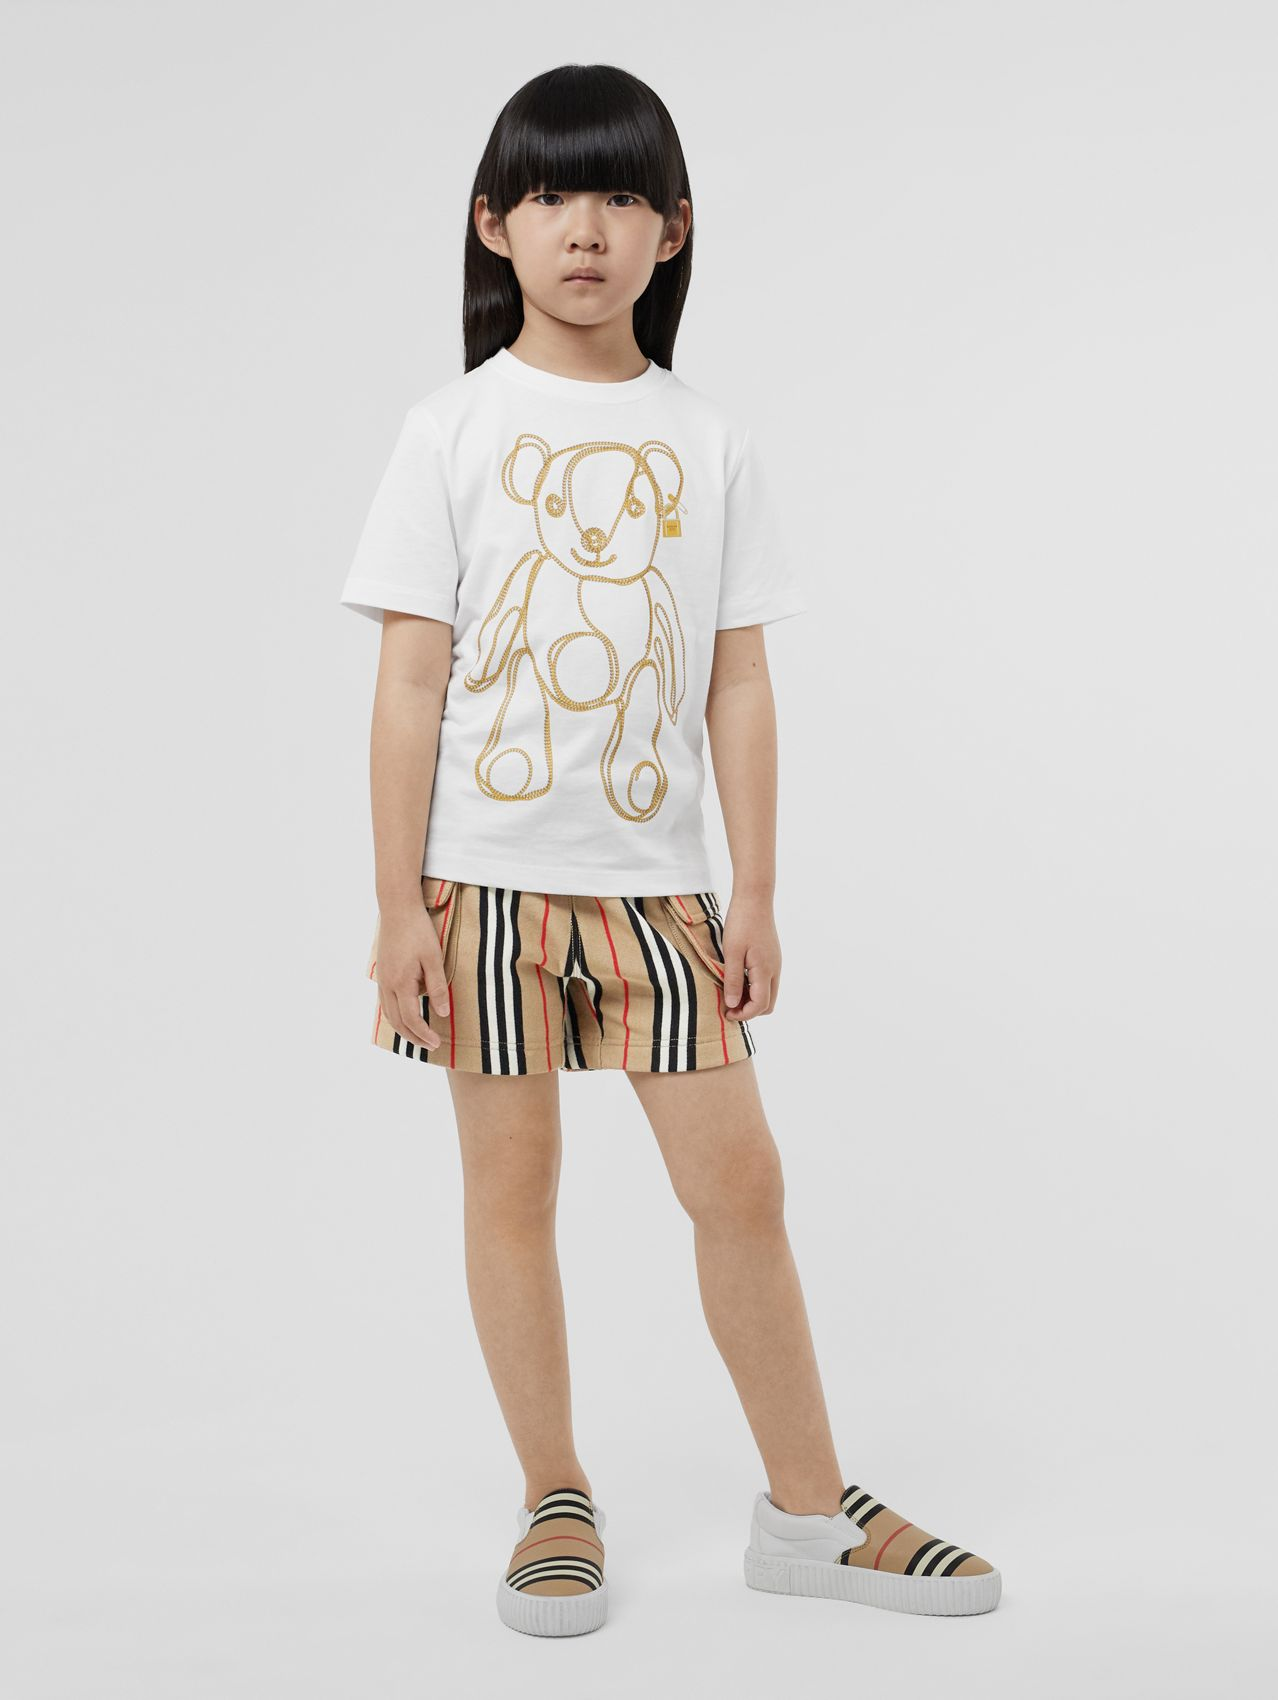 Chain Print Cotton T-shirt (White)